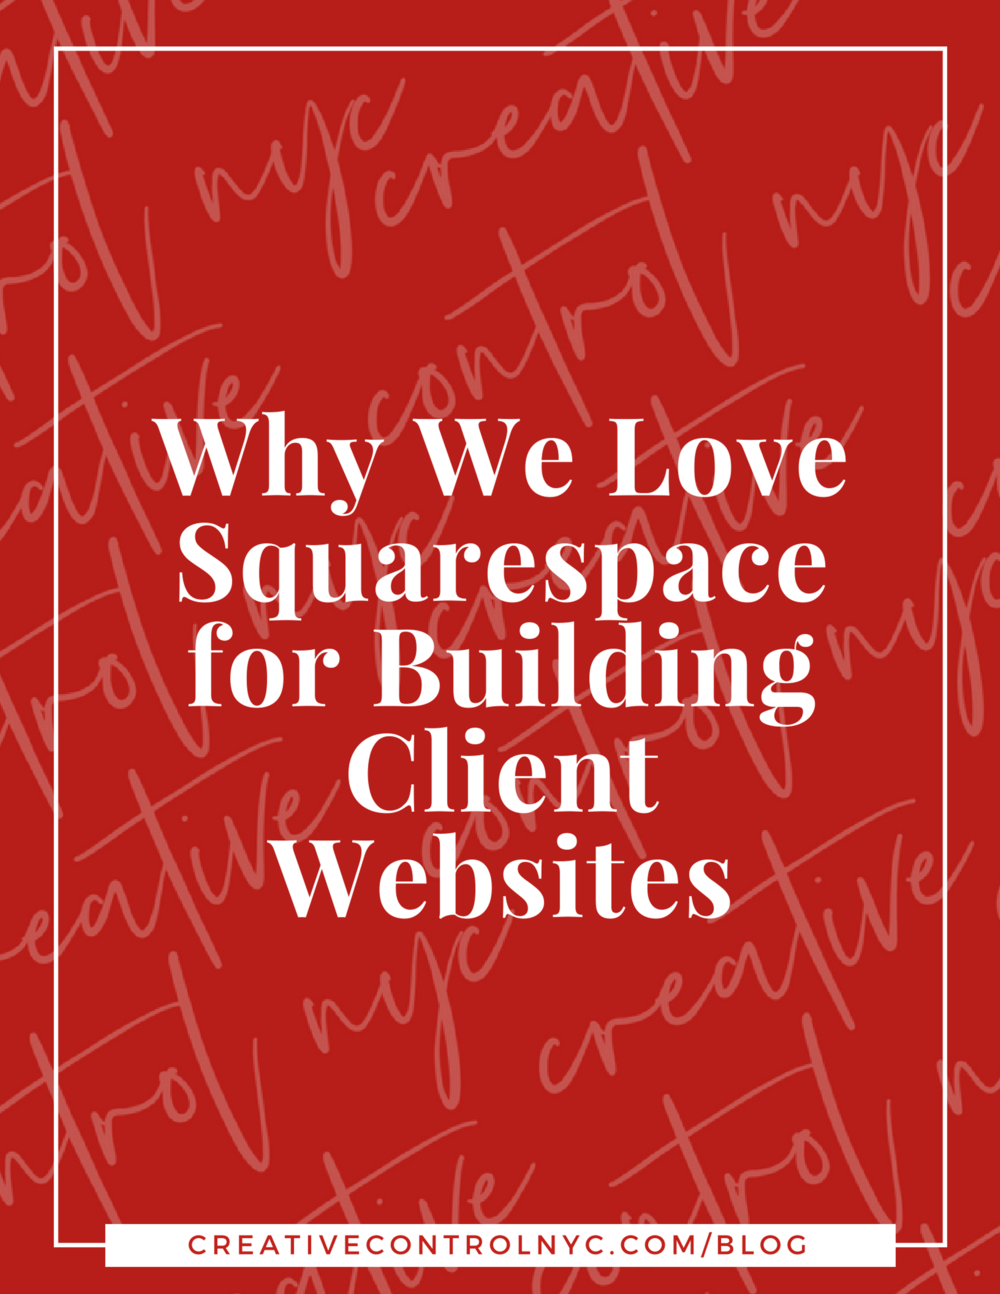 Creative Control NYC - Blog Post - Why We Love Squarespace for Building Client Websites.png